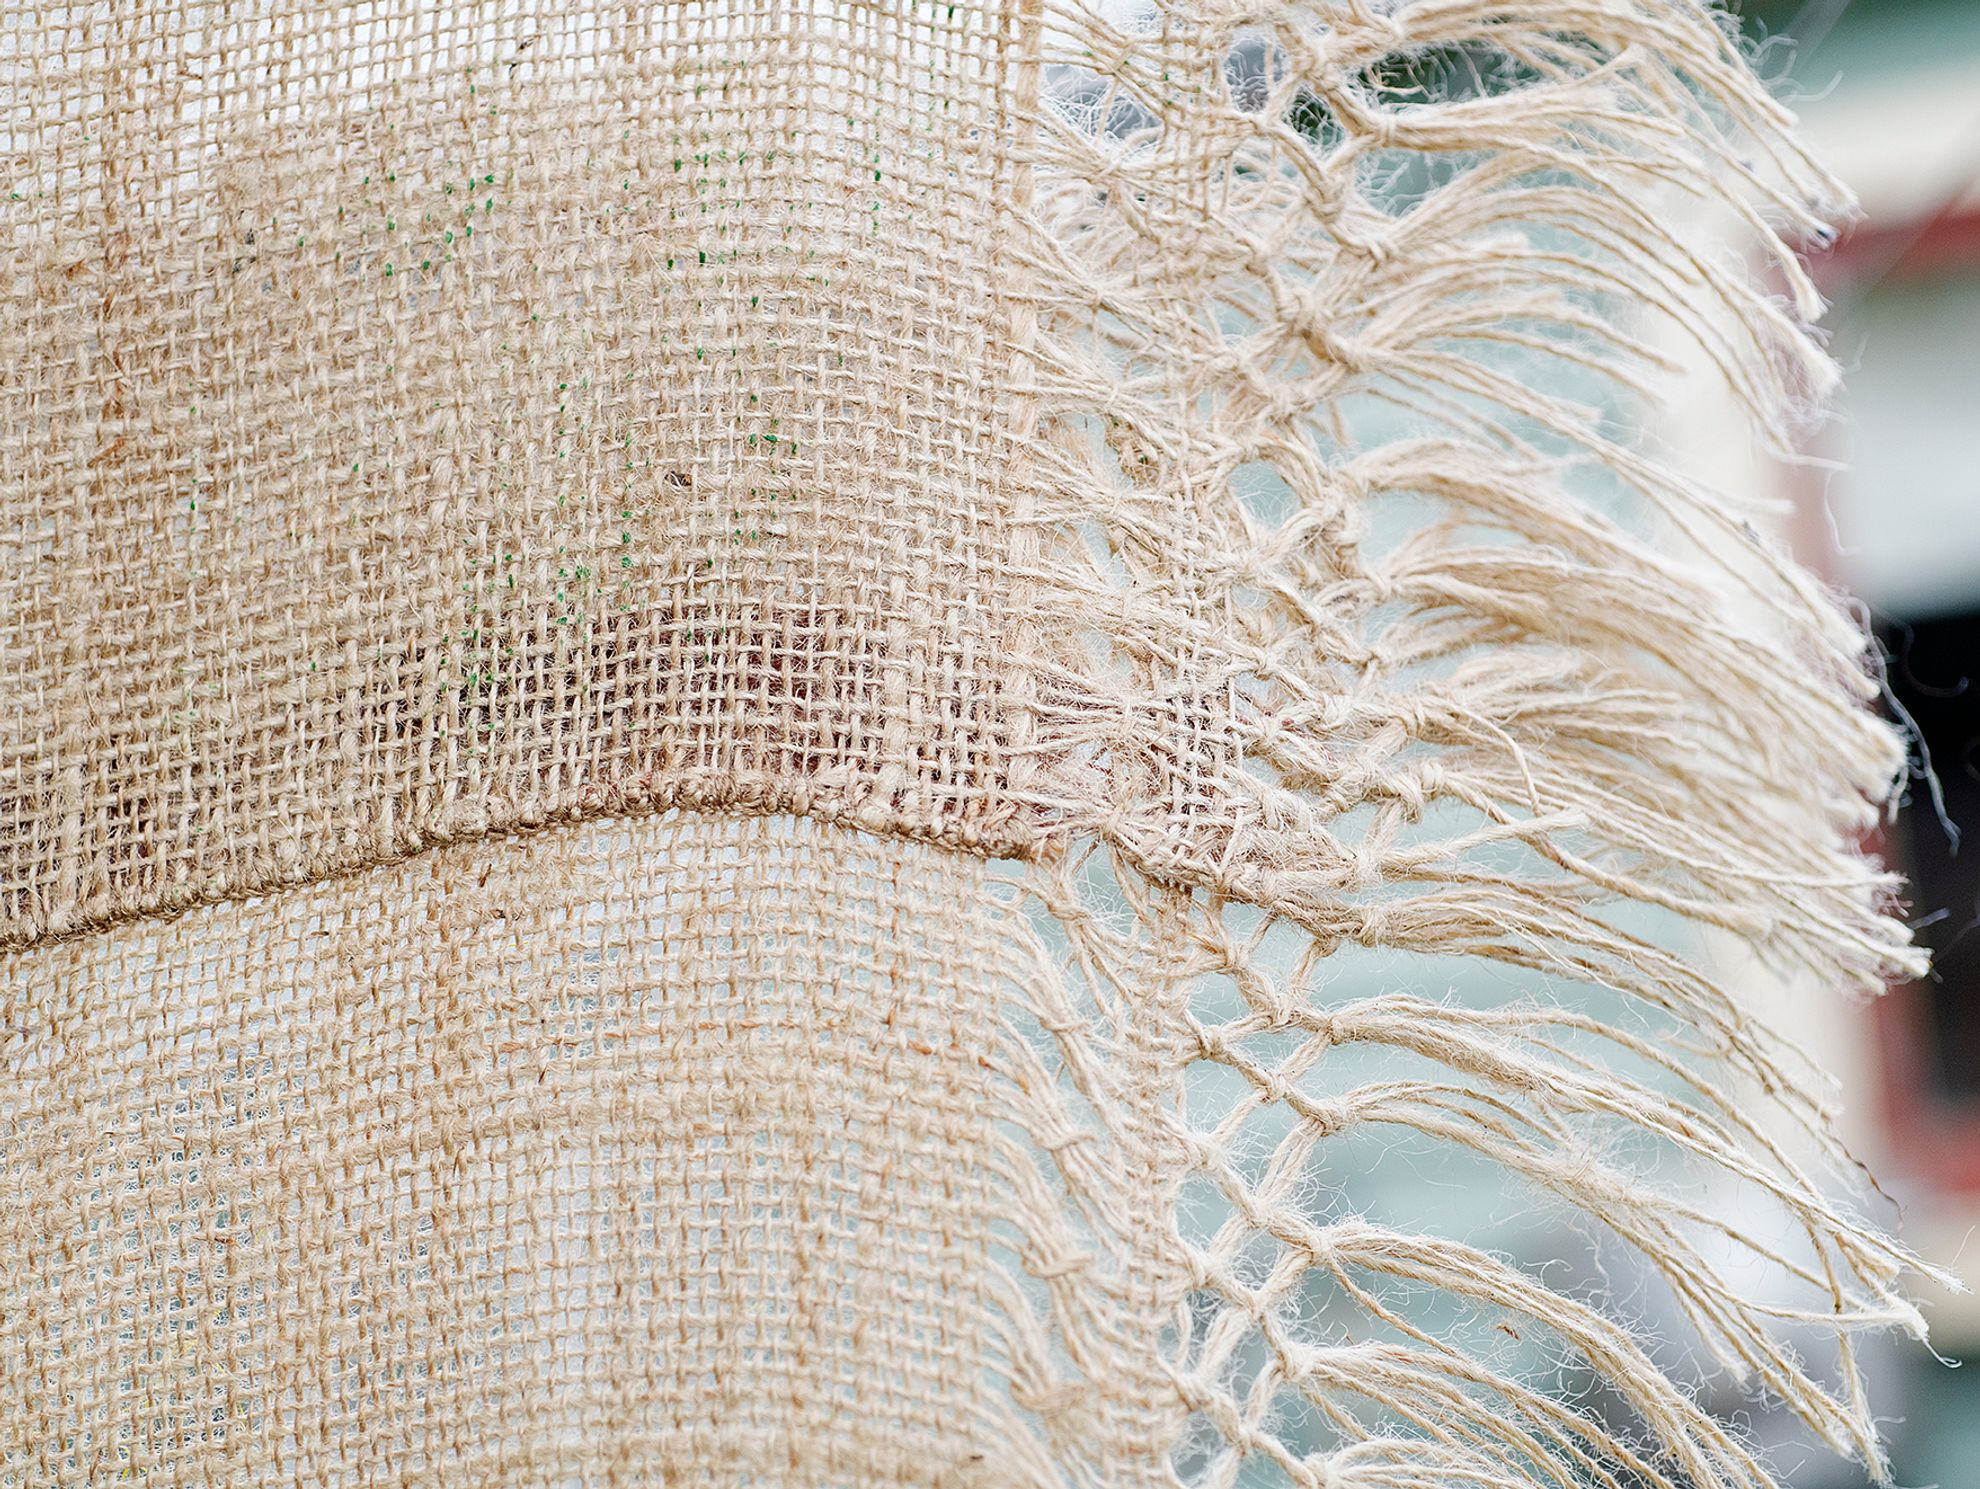 Quishile Charan, Burning Ganna Khet (Burning Sugarcane Farm), 2021, 153cm by 152cm, close up of weaving detail. Technique: hand dyed textile, embroidery thread, cotton, hessian sacks. Textile is naturally dyed with avocado seeds. Image taken by: Raymond Sagapolutele.